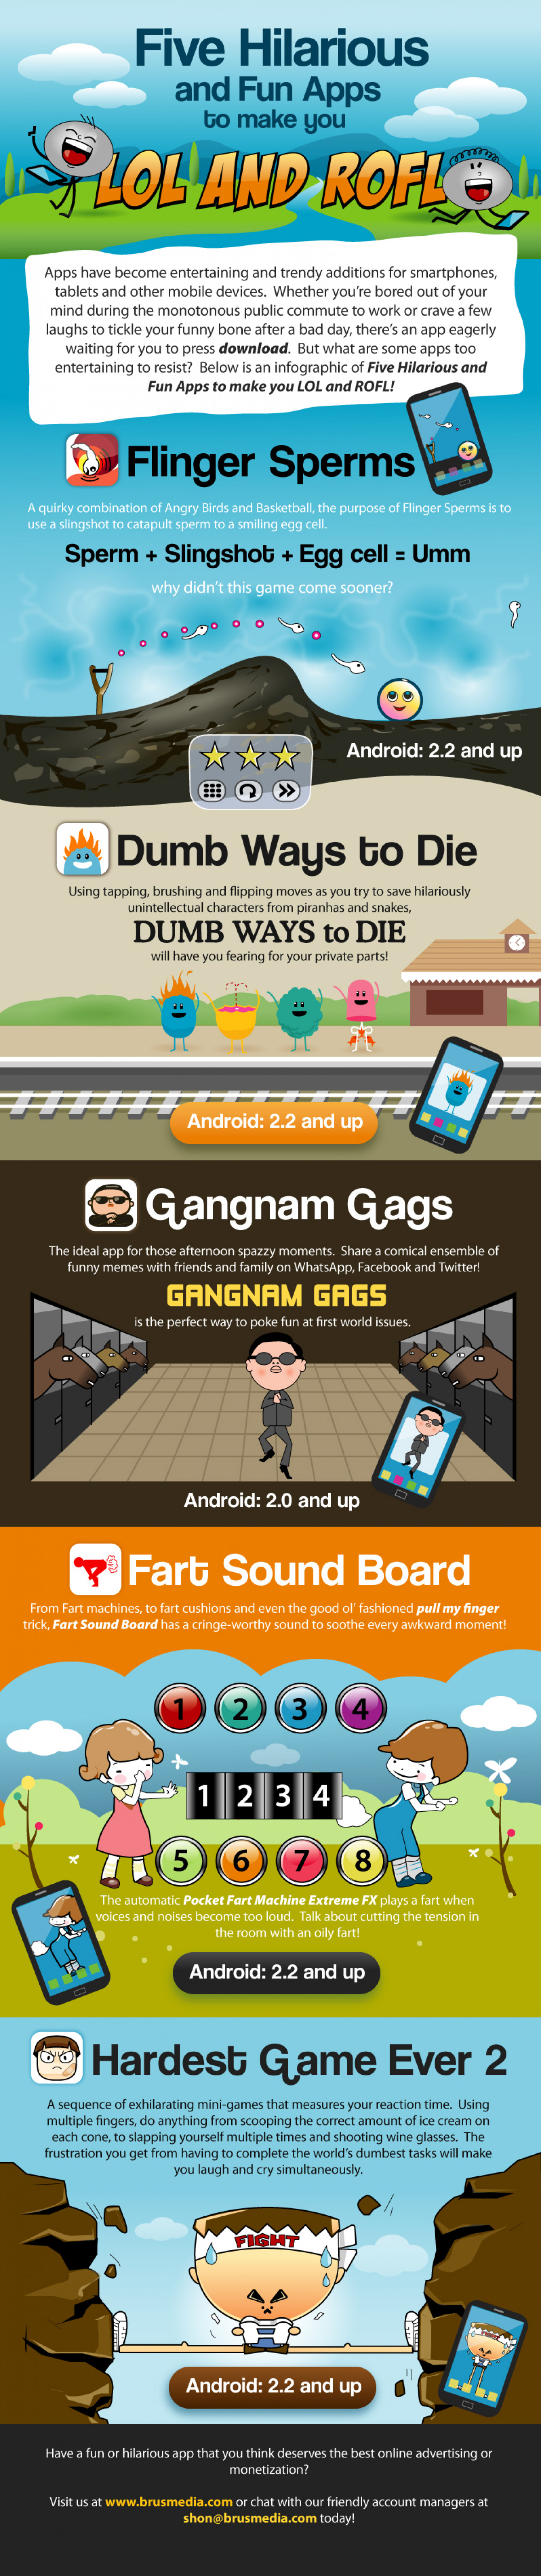 Five Hilarious and Fun Apps to Make You LOL and ROFL Infographic